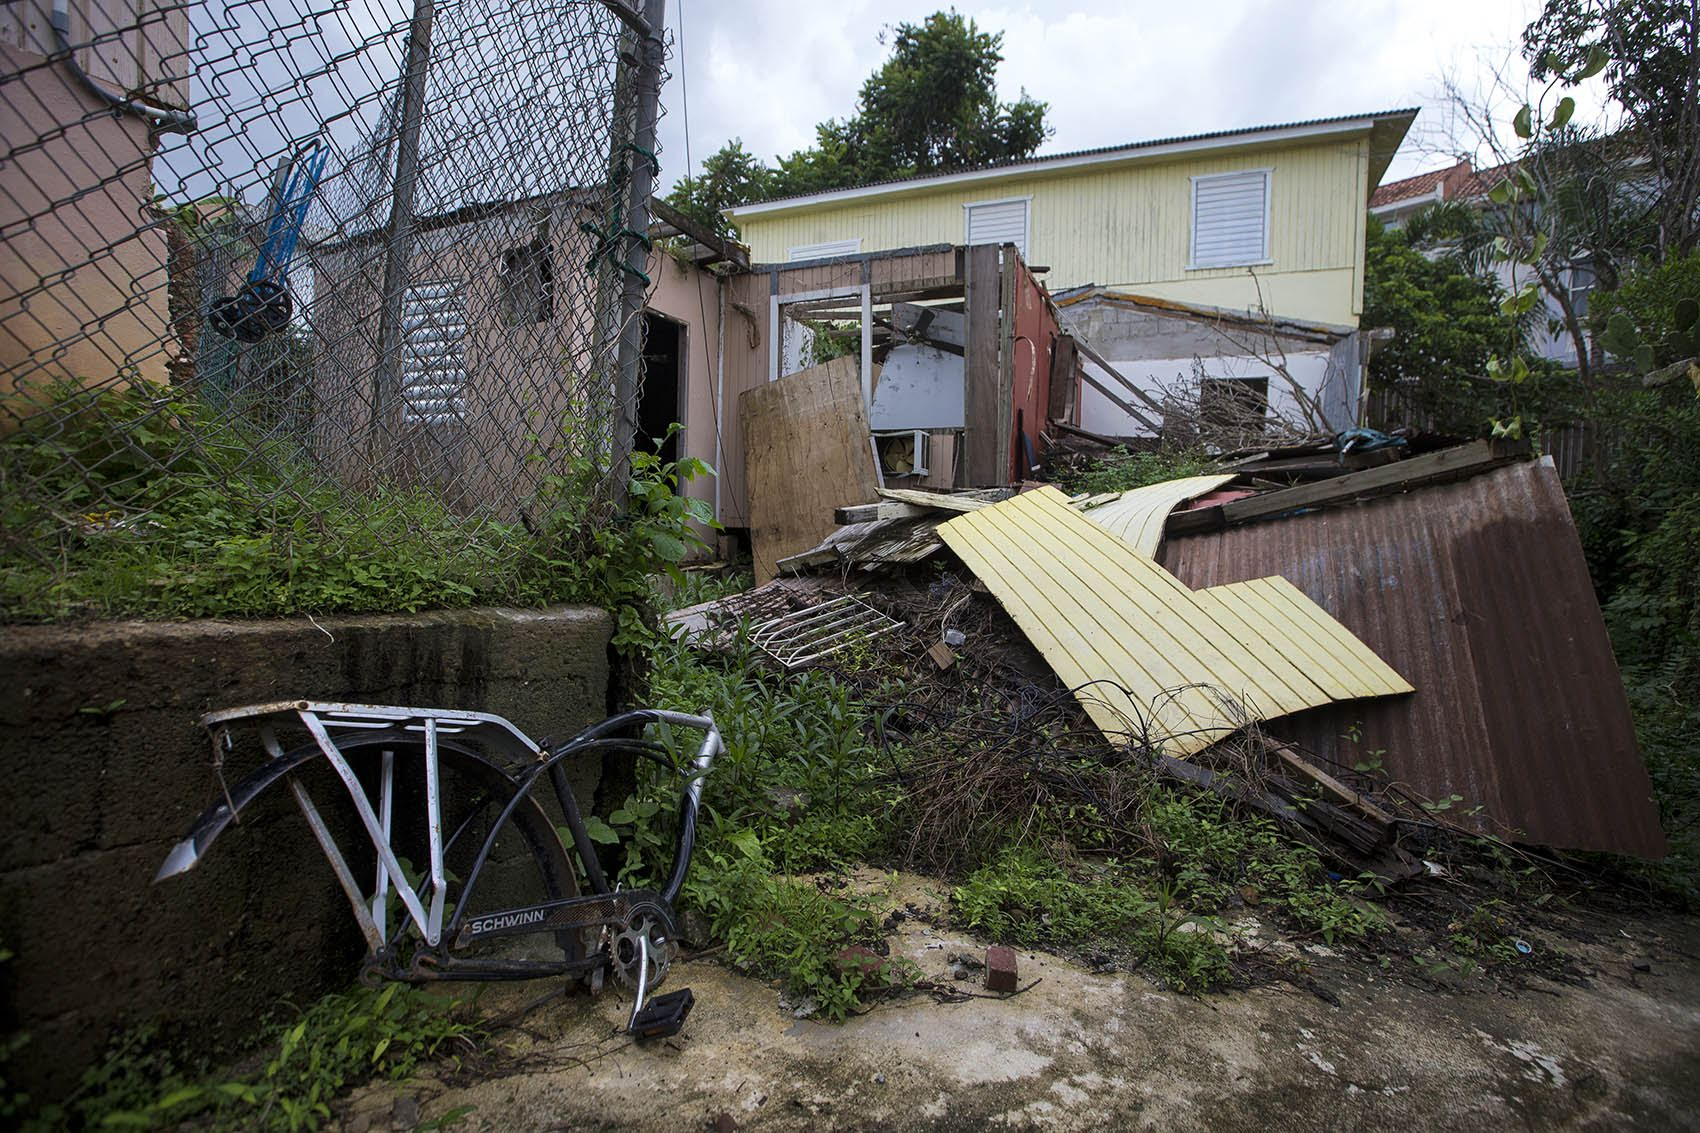 A house in Guaynabo, which was completely leveled by Hurricane Maria, still sits in ruin one year after the storm. (Jesse Costa/WBUR)